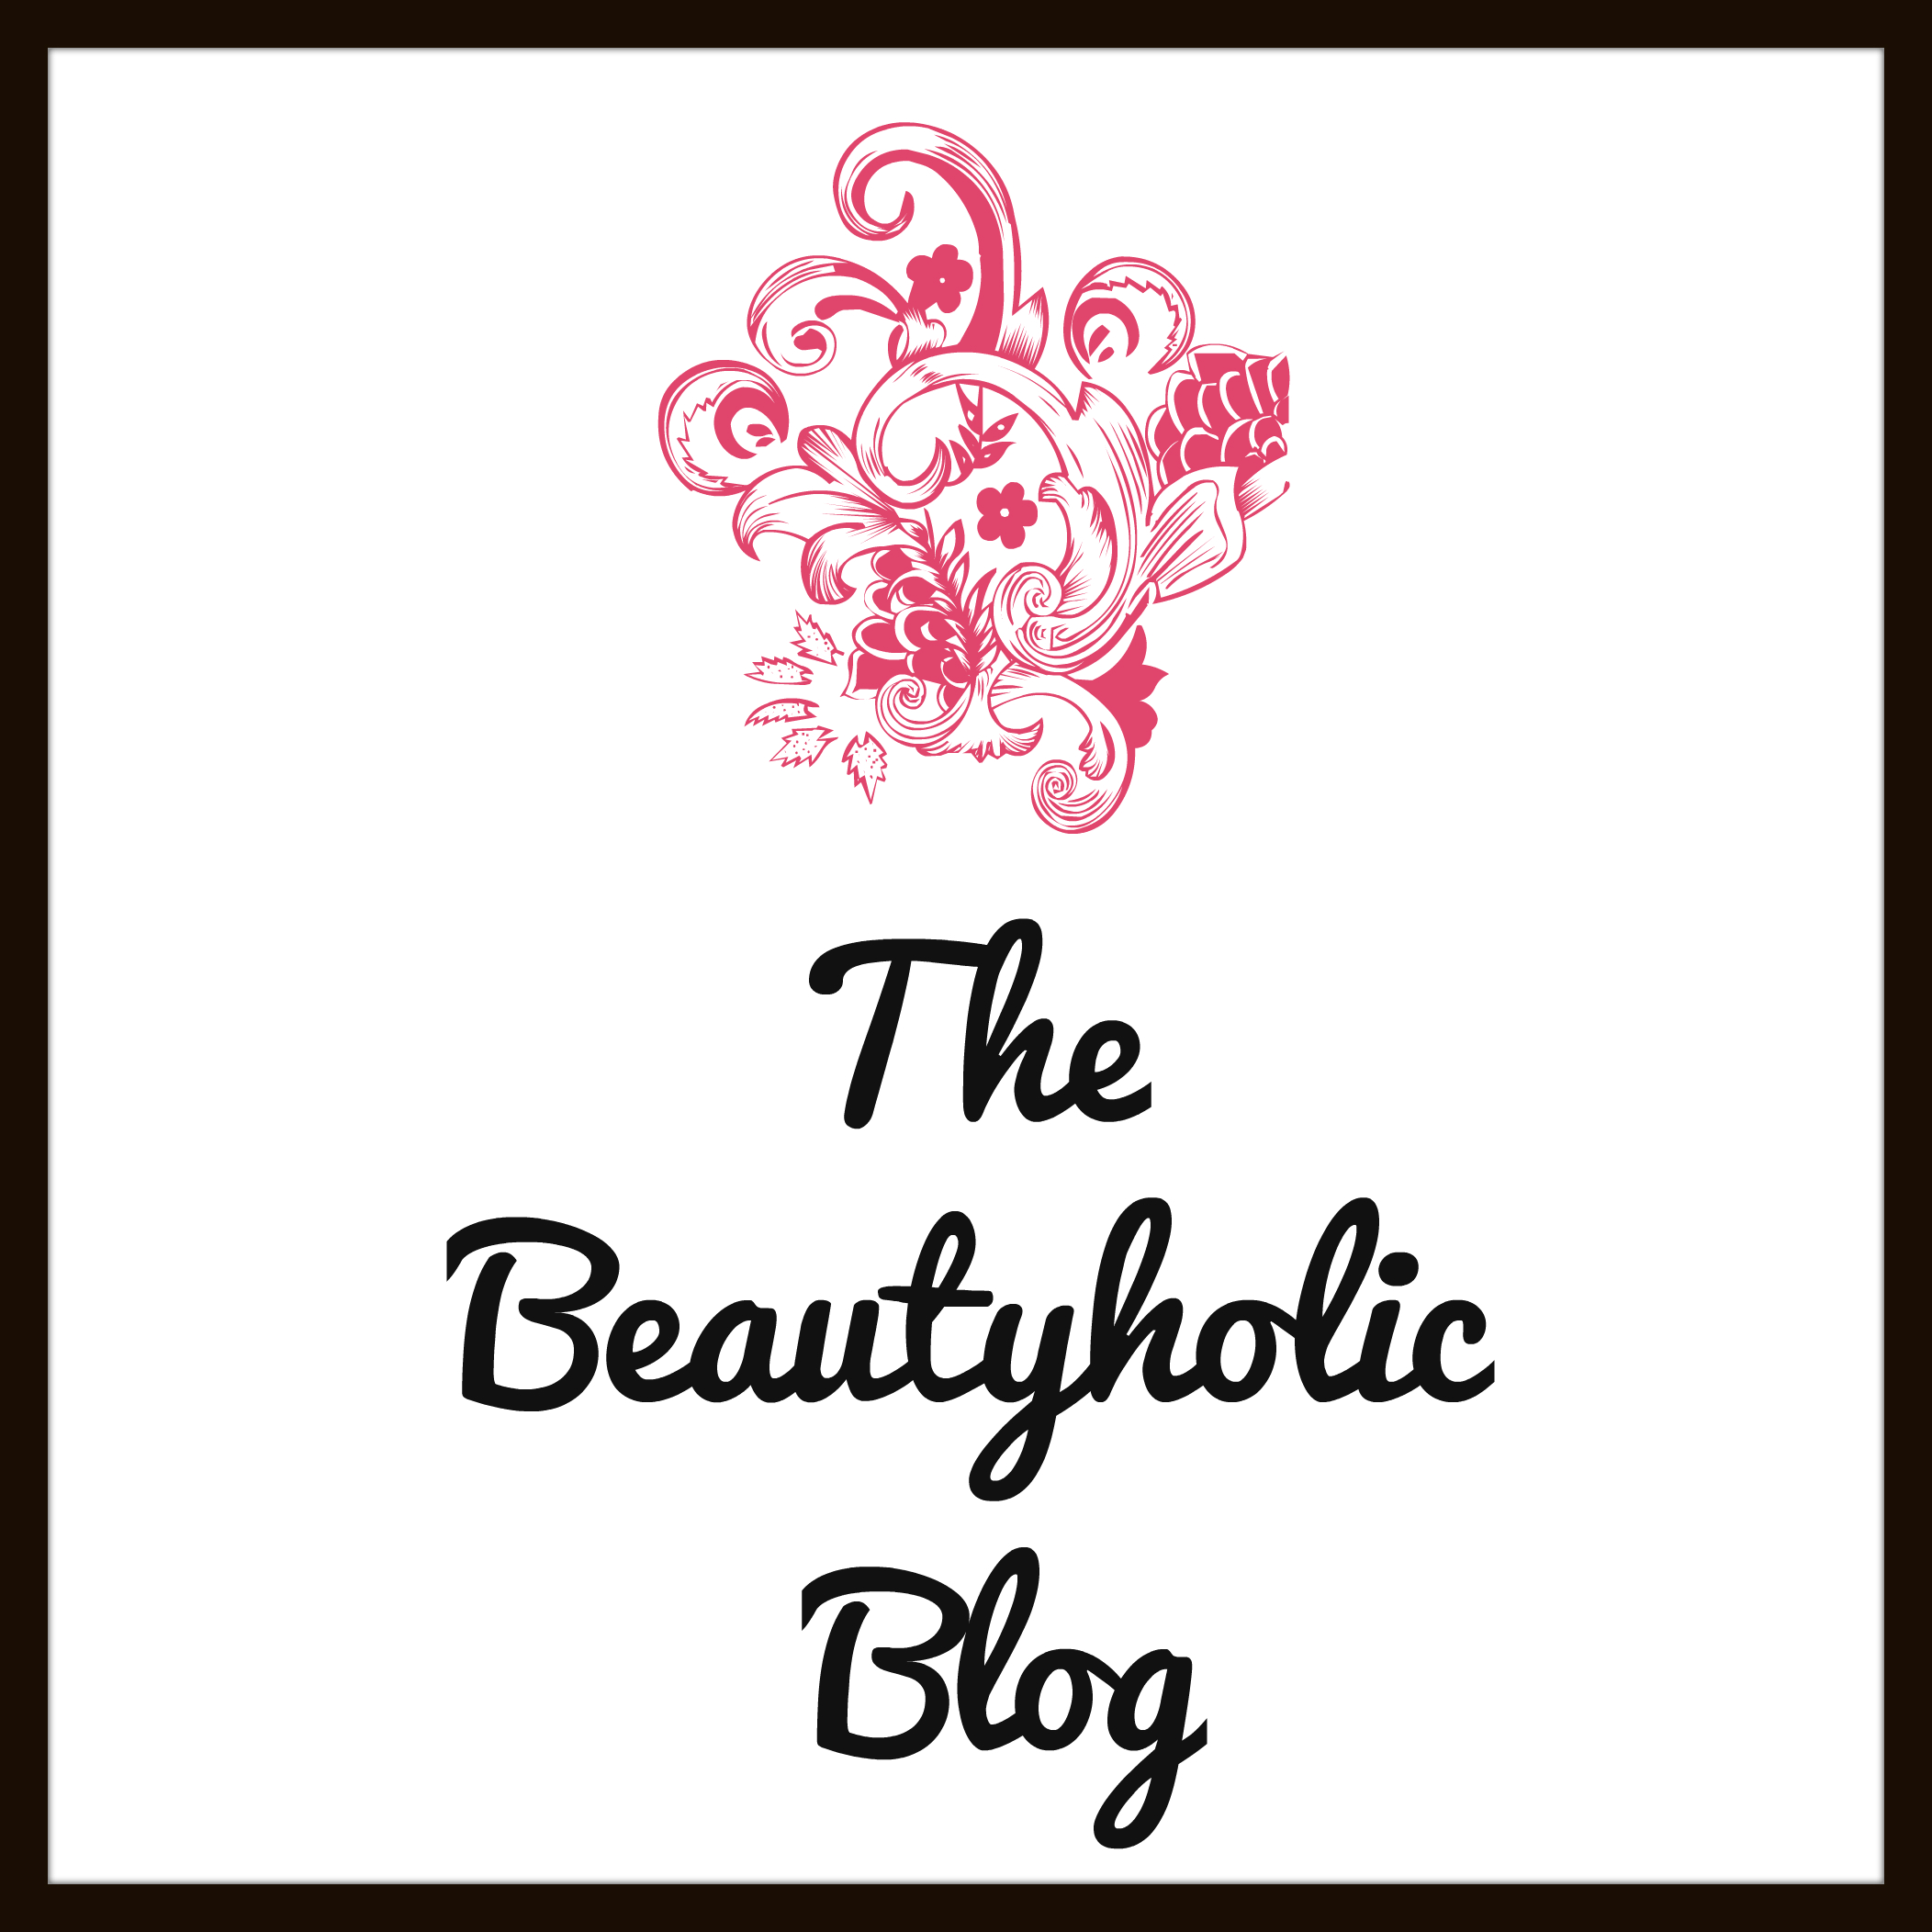 The Beautyholic